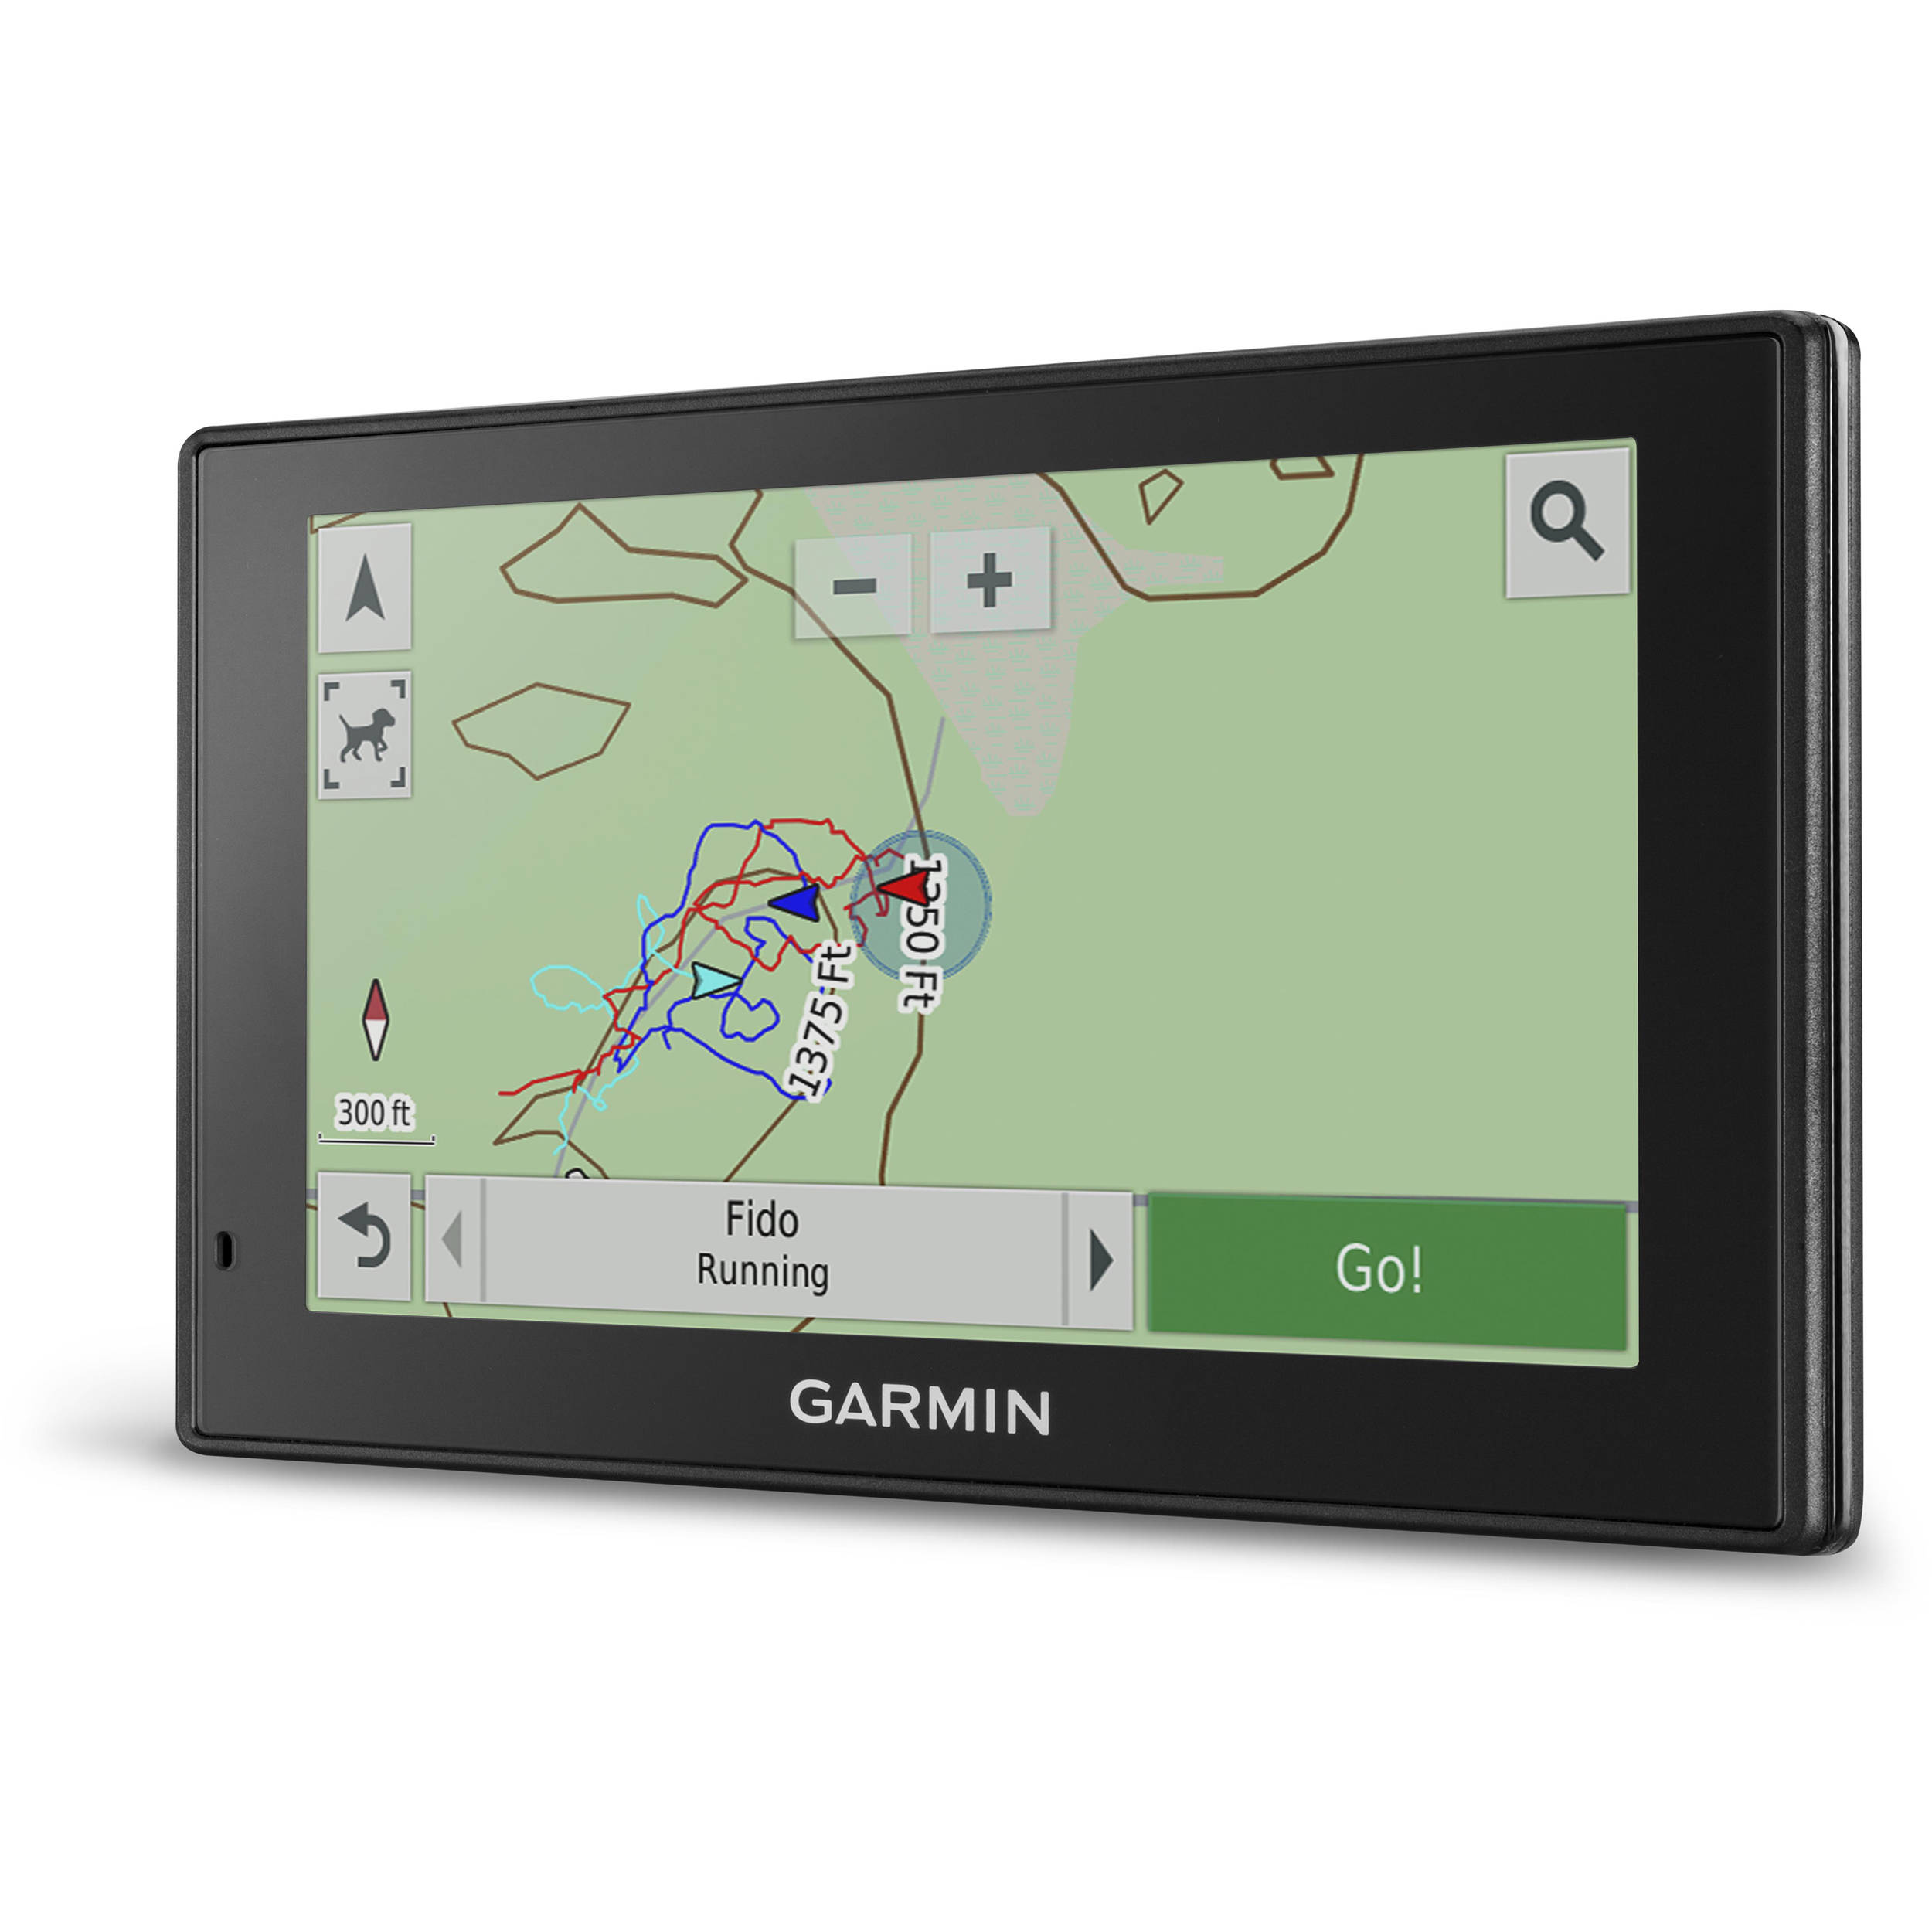 Garmin DriveTrack 70 LMT In Vehicle Dog Tracker